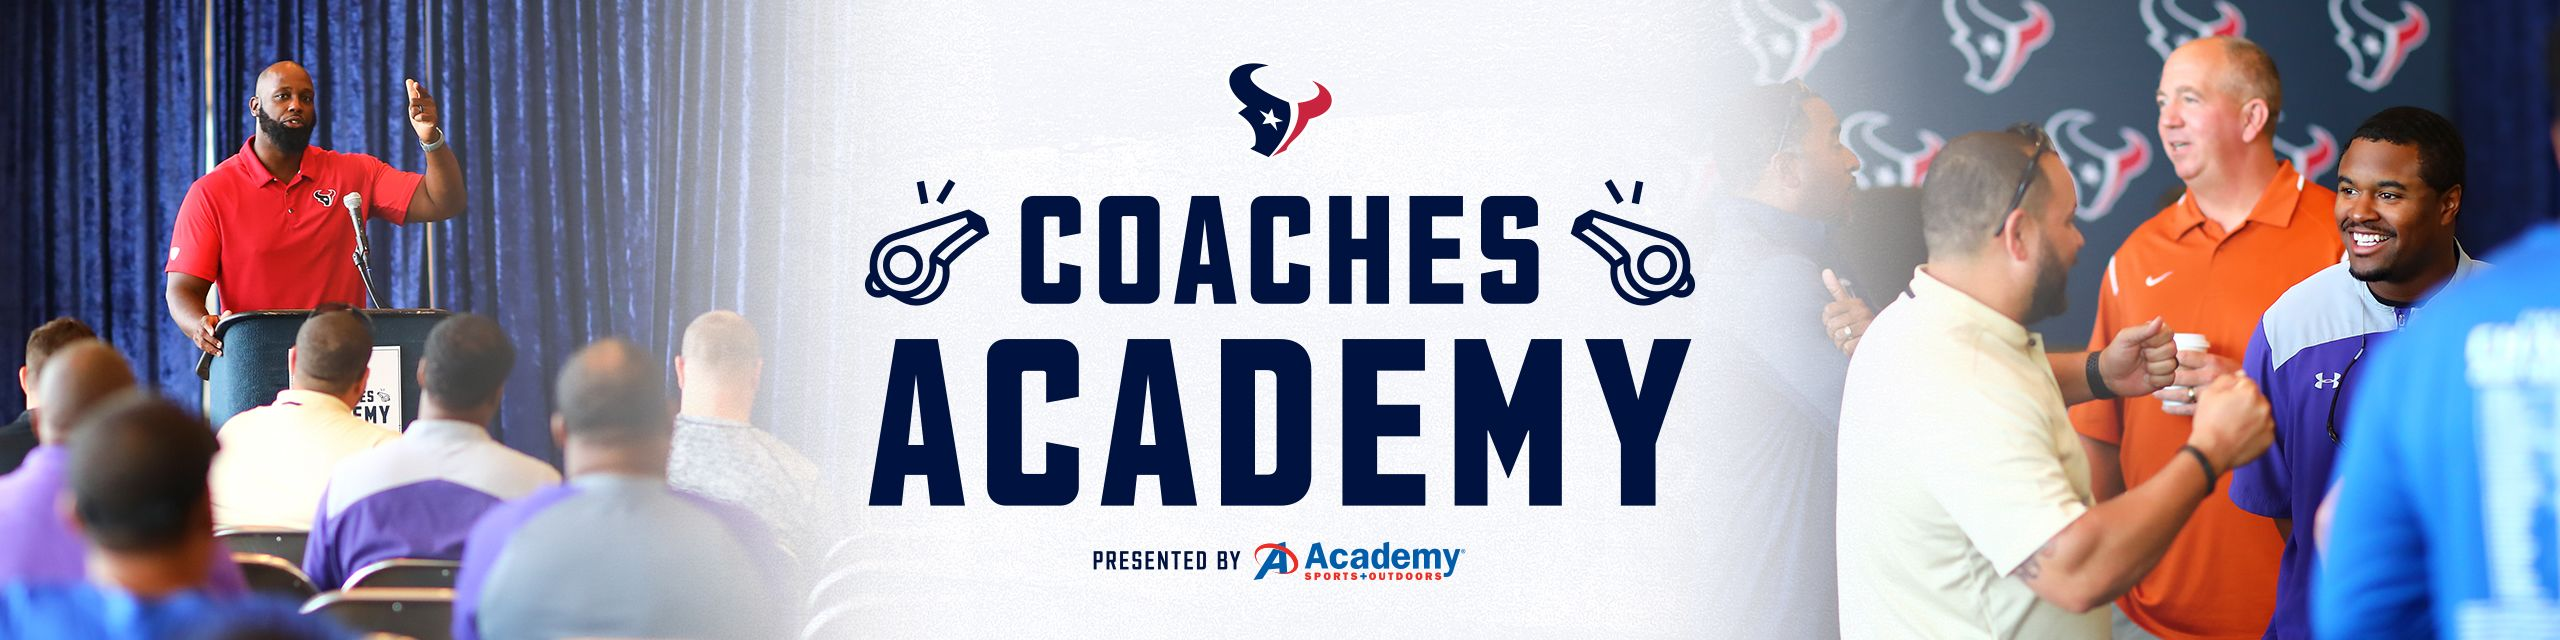 Coaches Academy presented by Academy